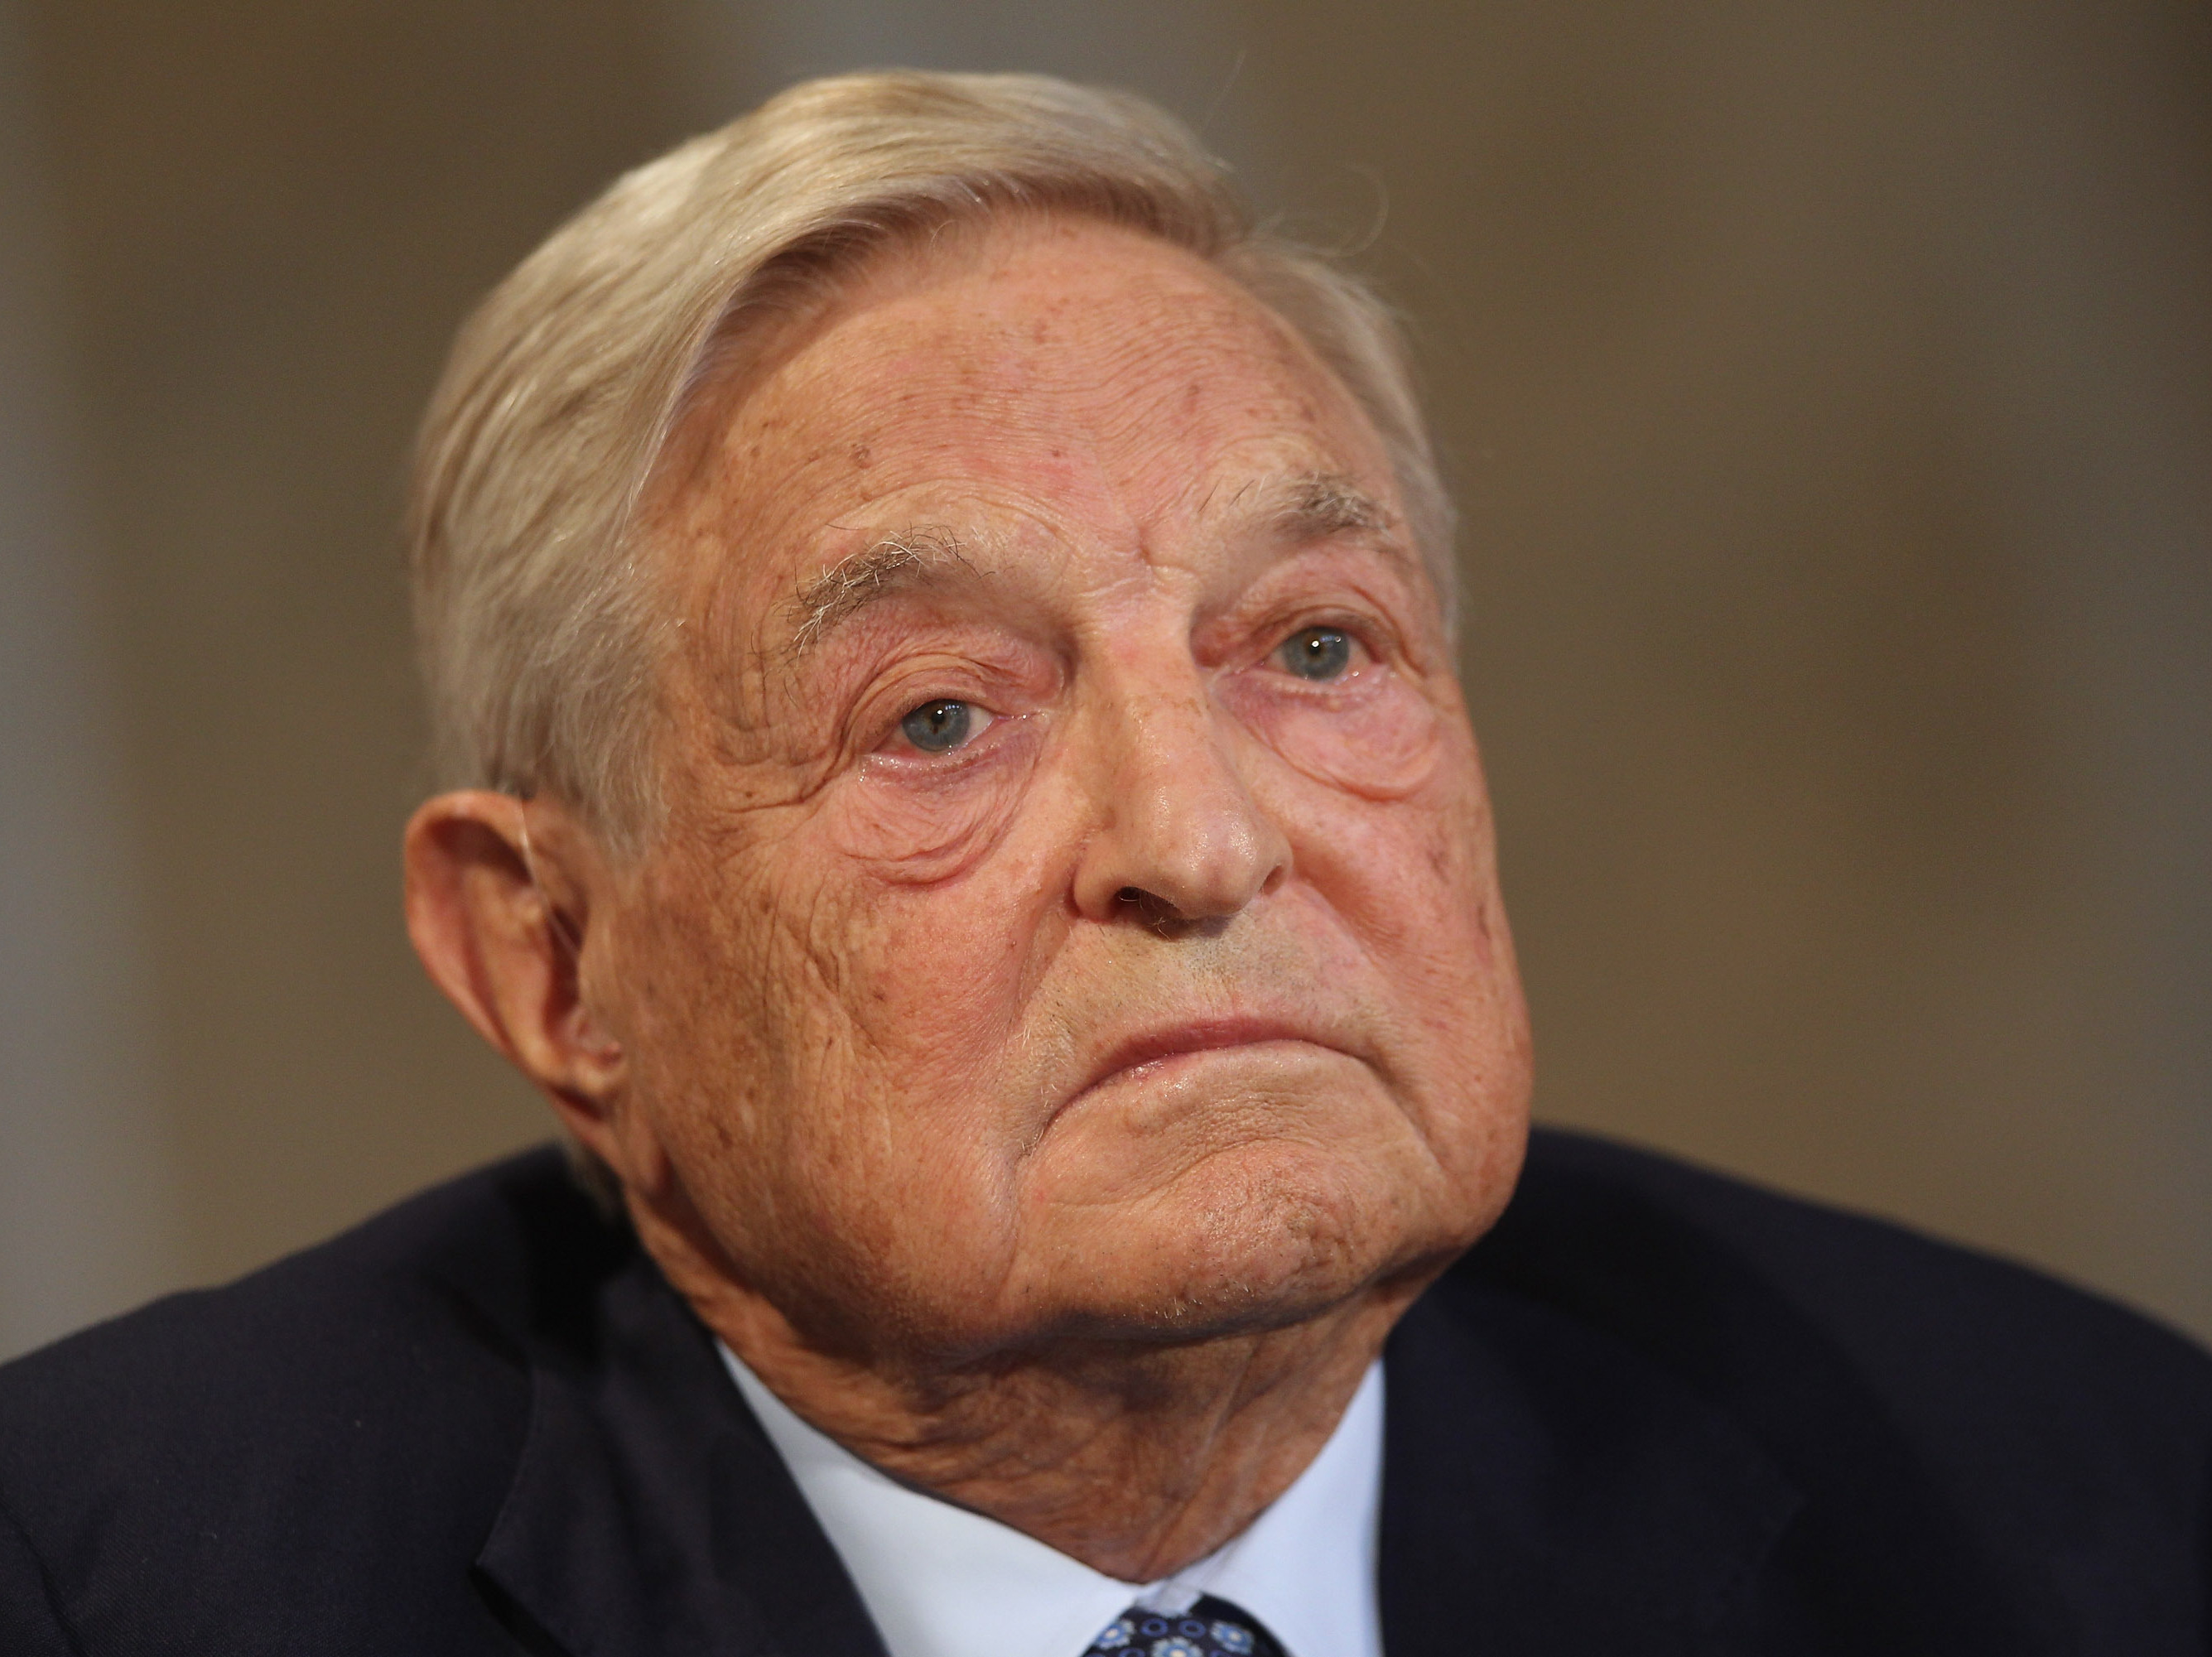 'Ready For Hillary' SuperPAC Gains Backing From Soros